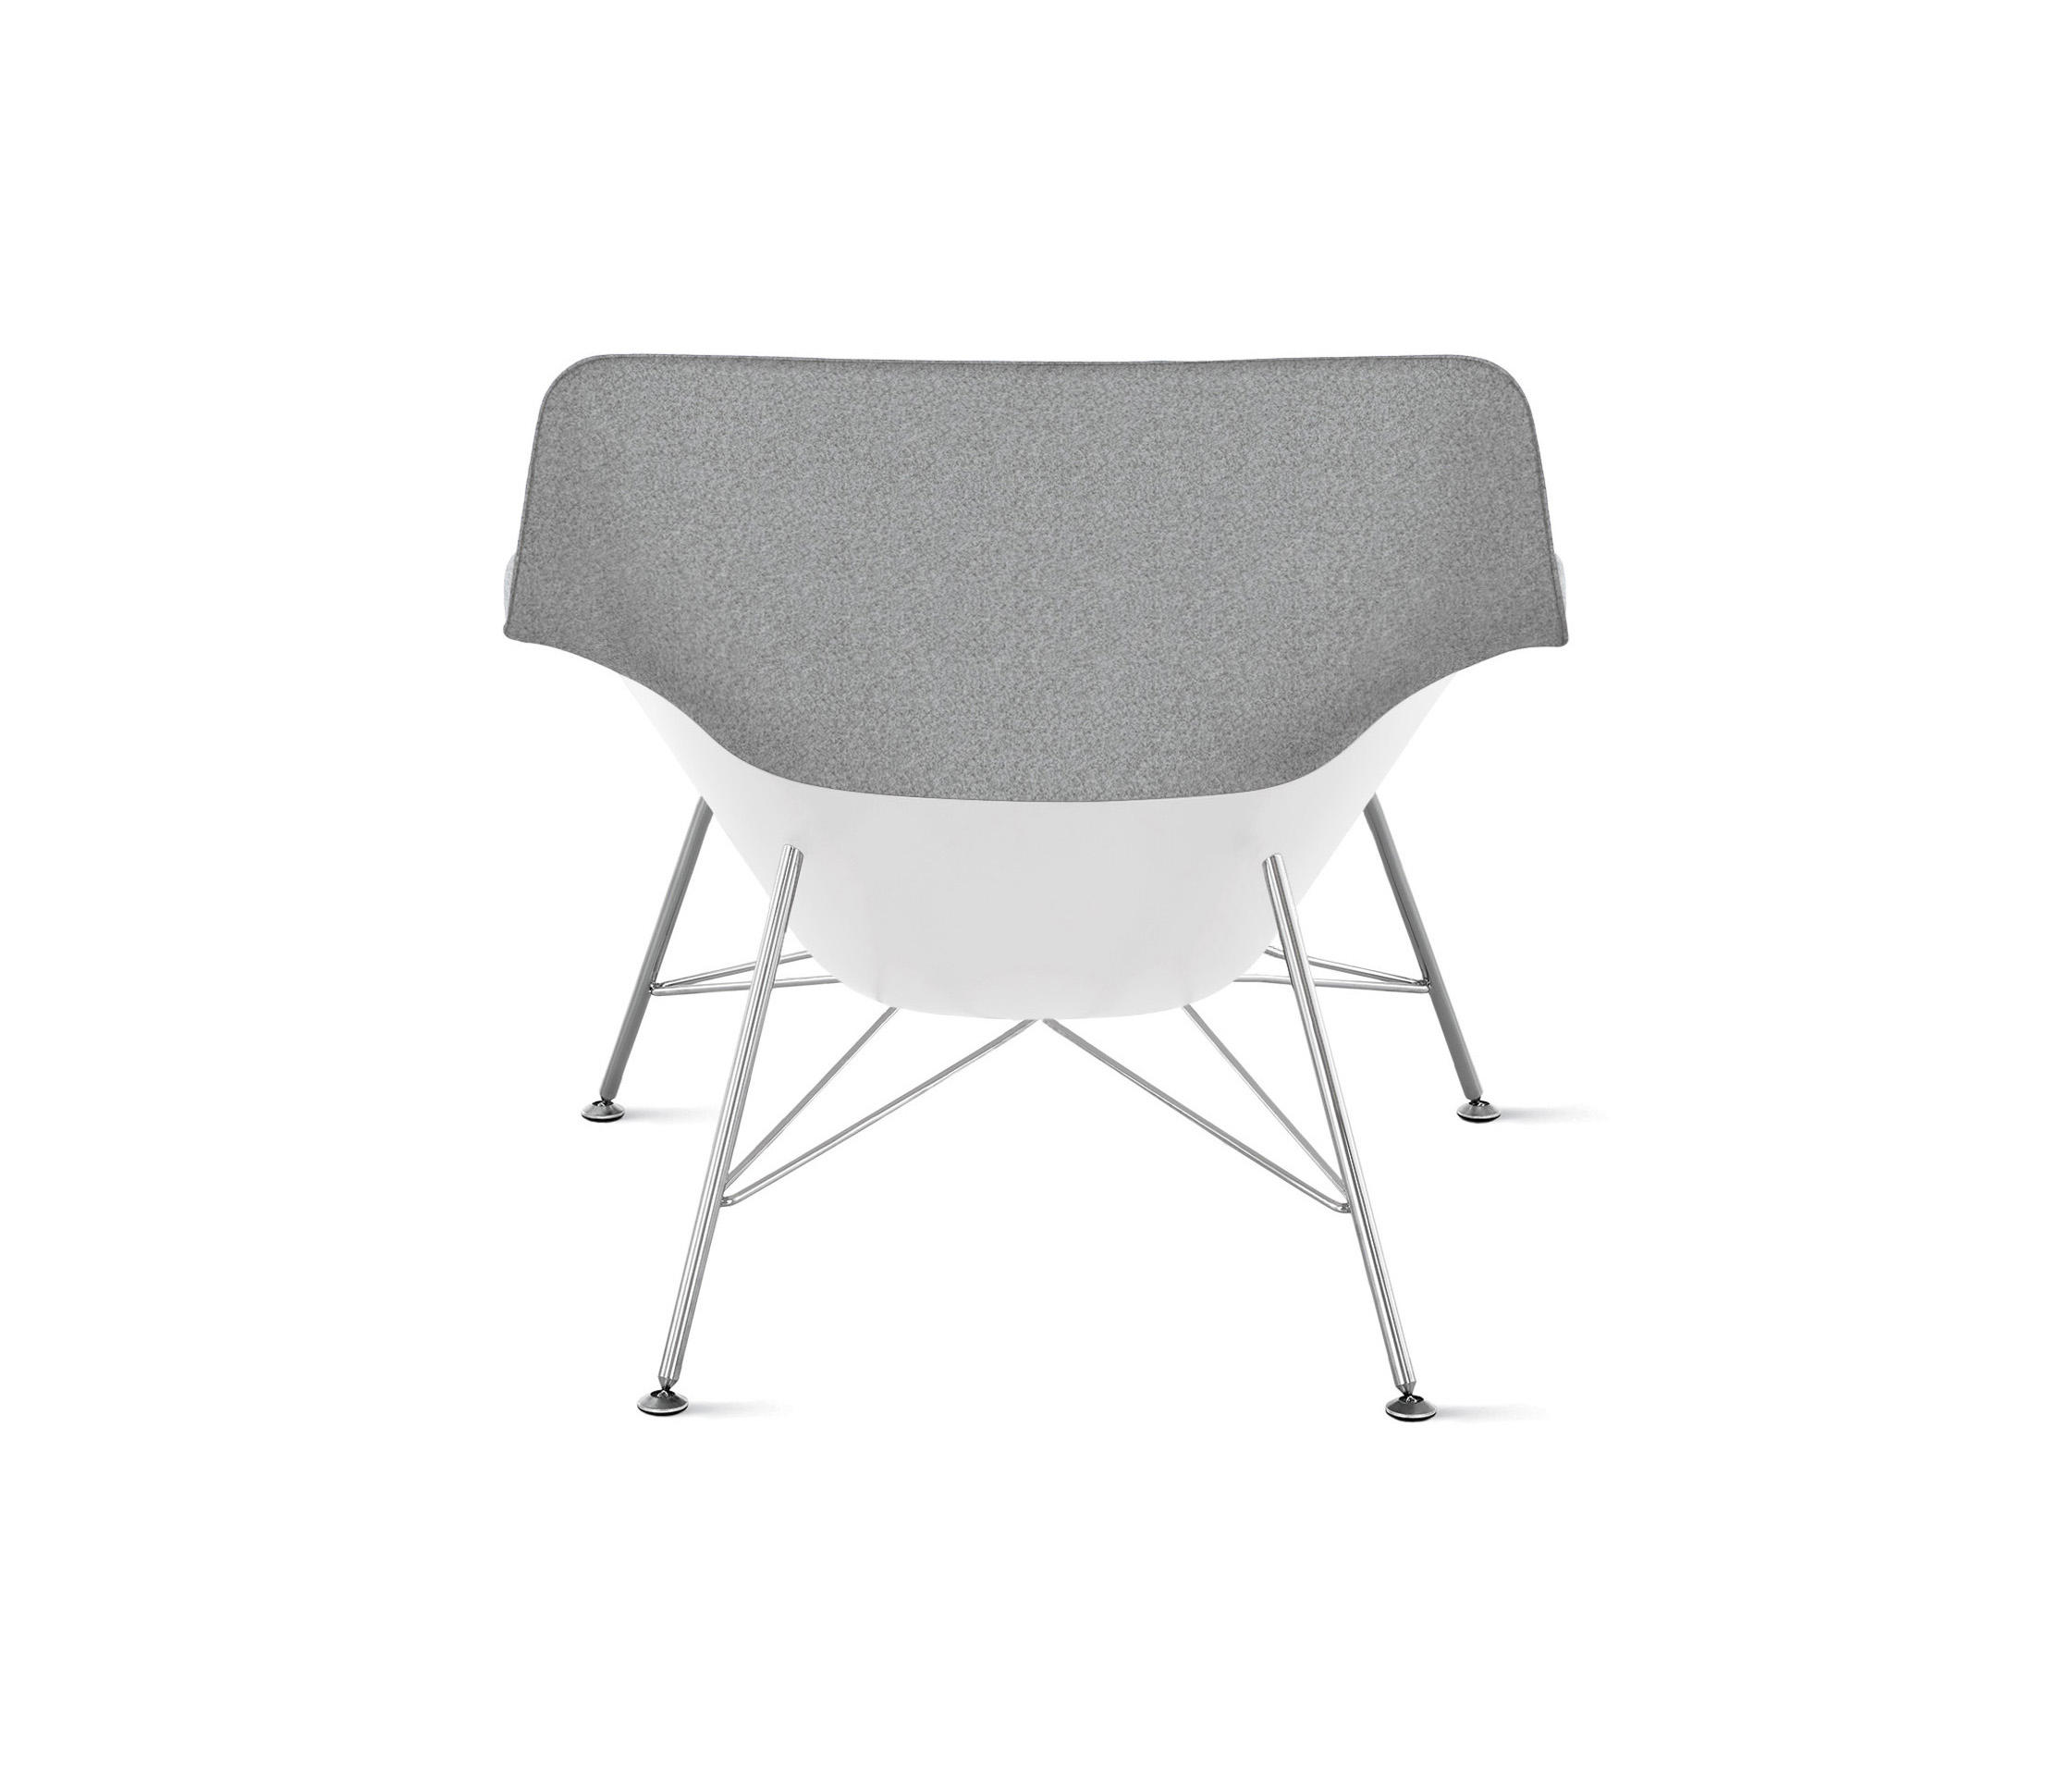 chair design within reach youth folding striad low back lounge chairs from